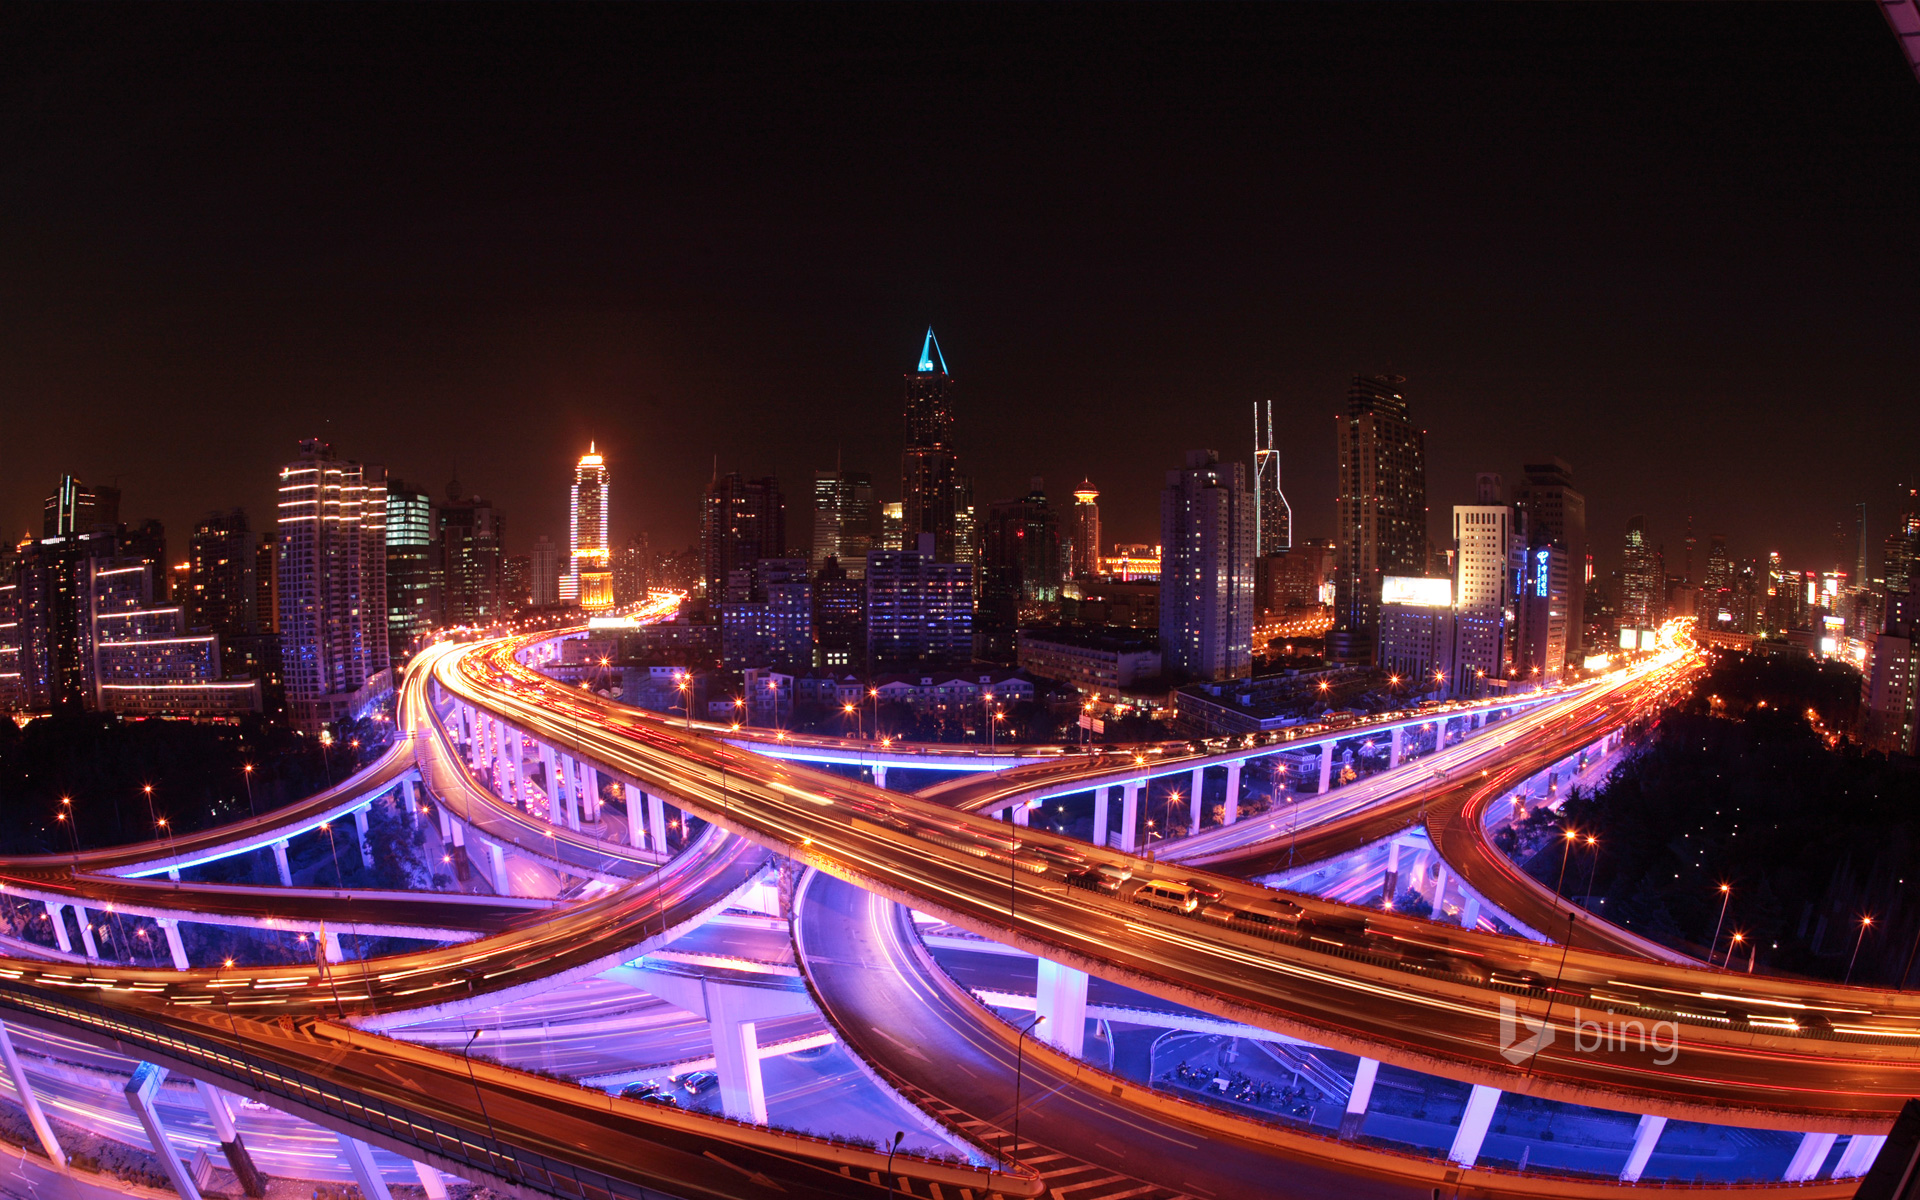 Shanghai 39 s roadways and skyline lit up at night kevin lee getty images bing wallpapers - Shanghai skyline wallpaper ...